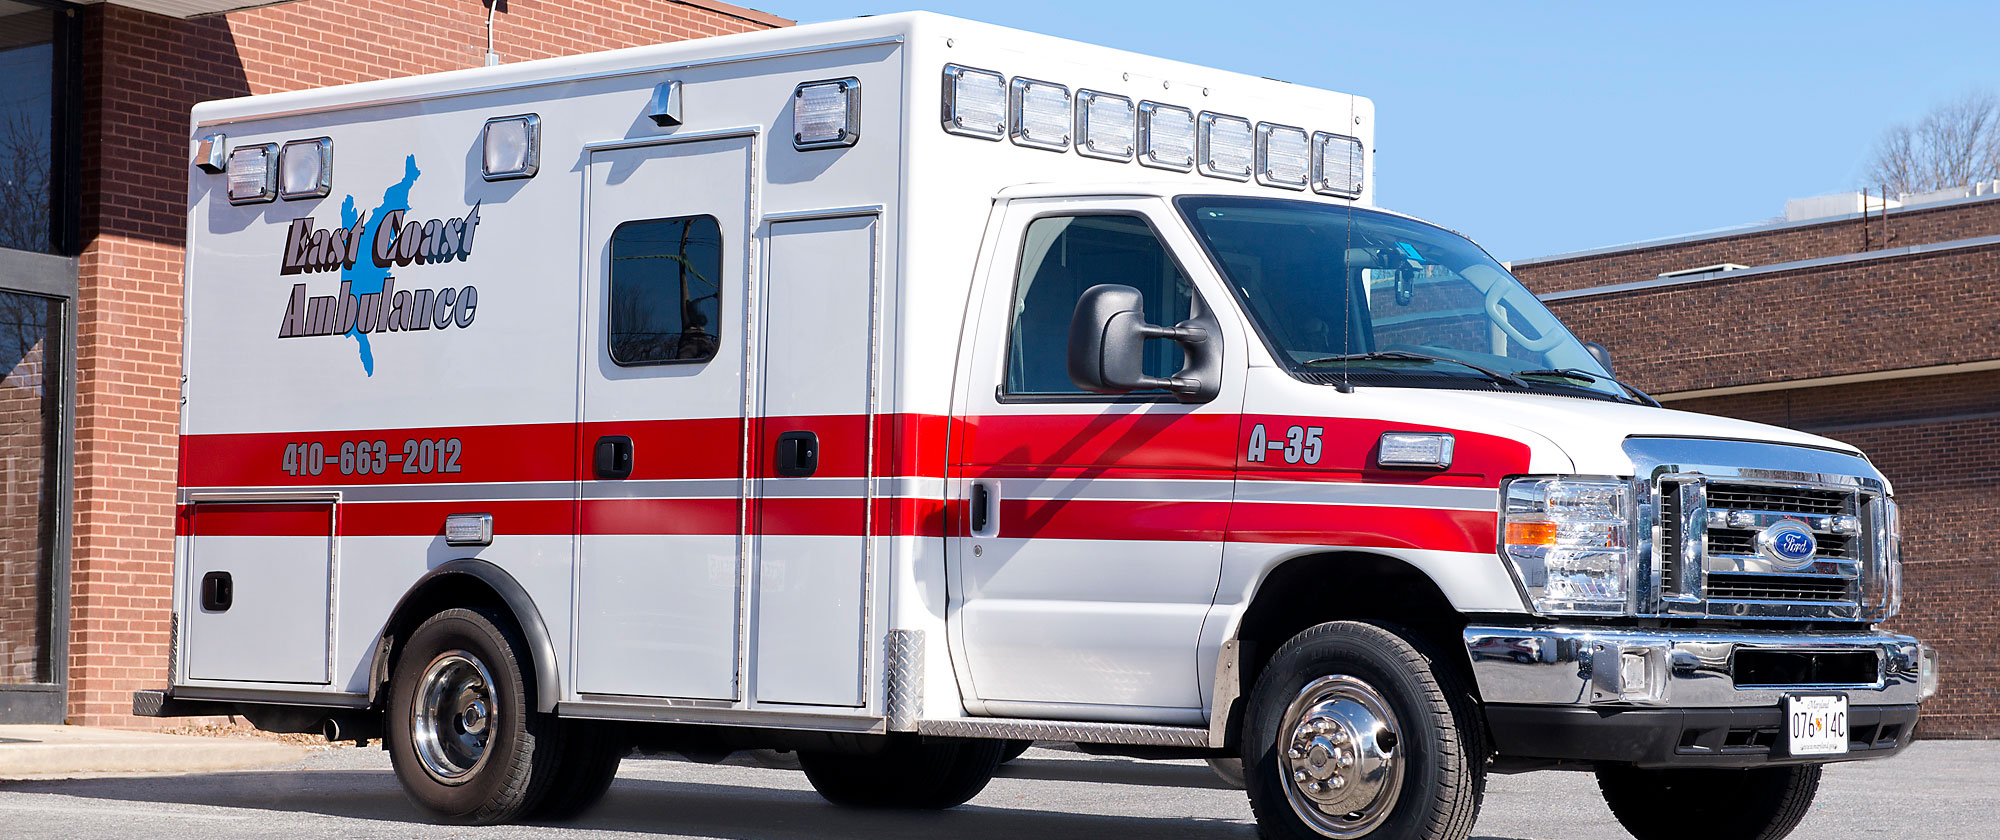 Ambulance Images ambulance services in maryland & delaware | east coast ambulance